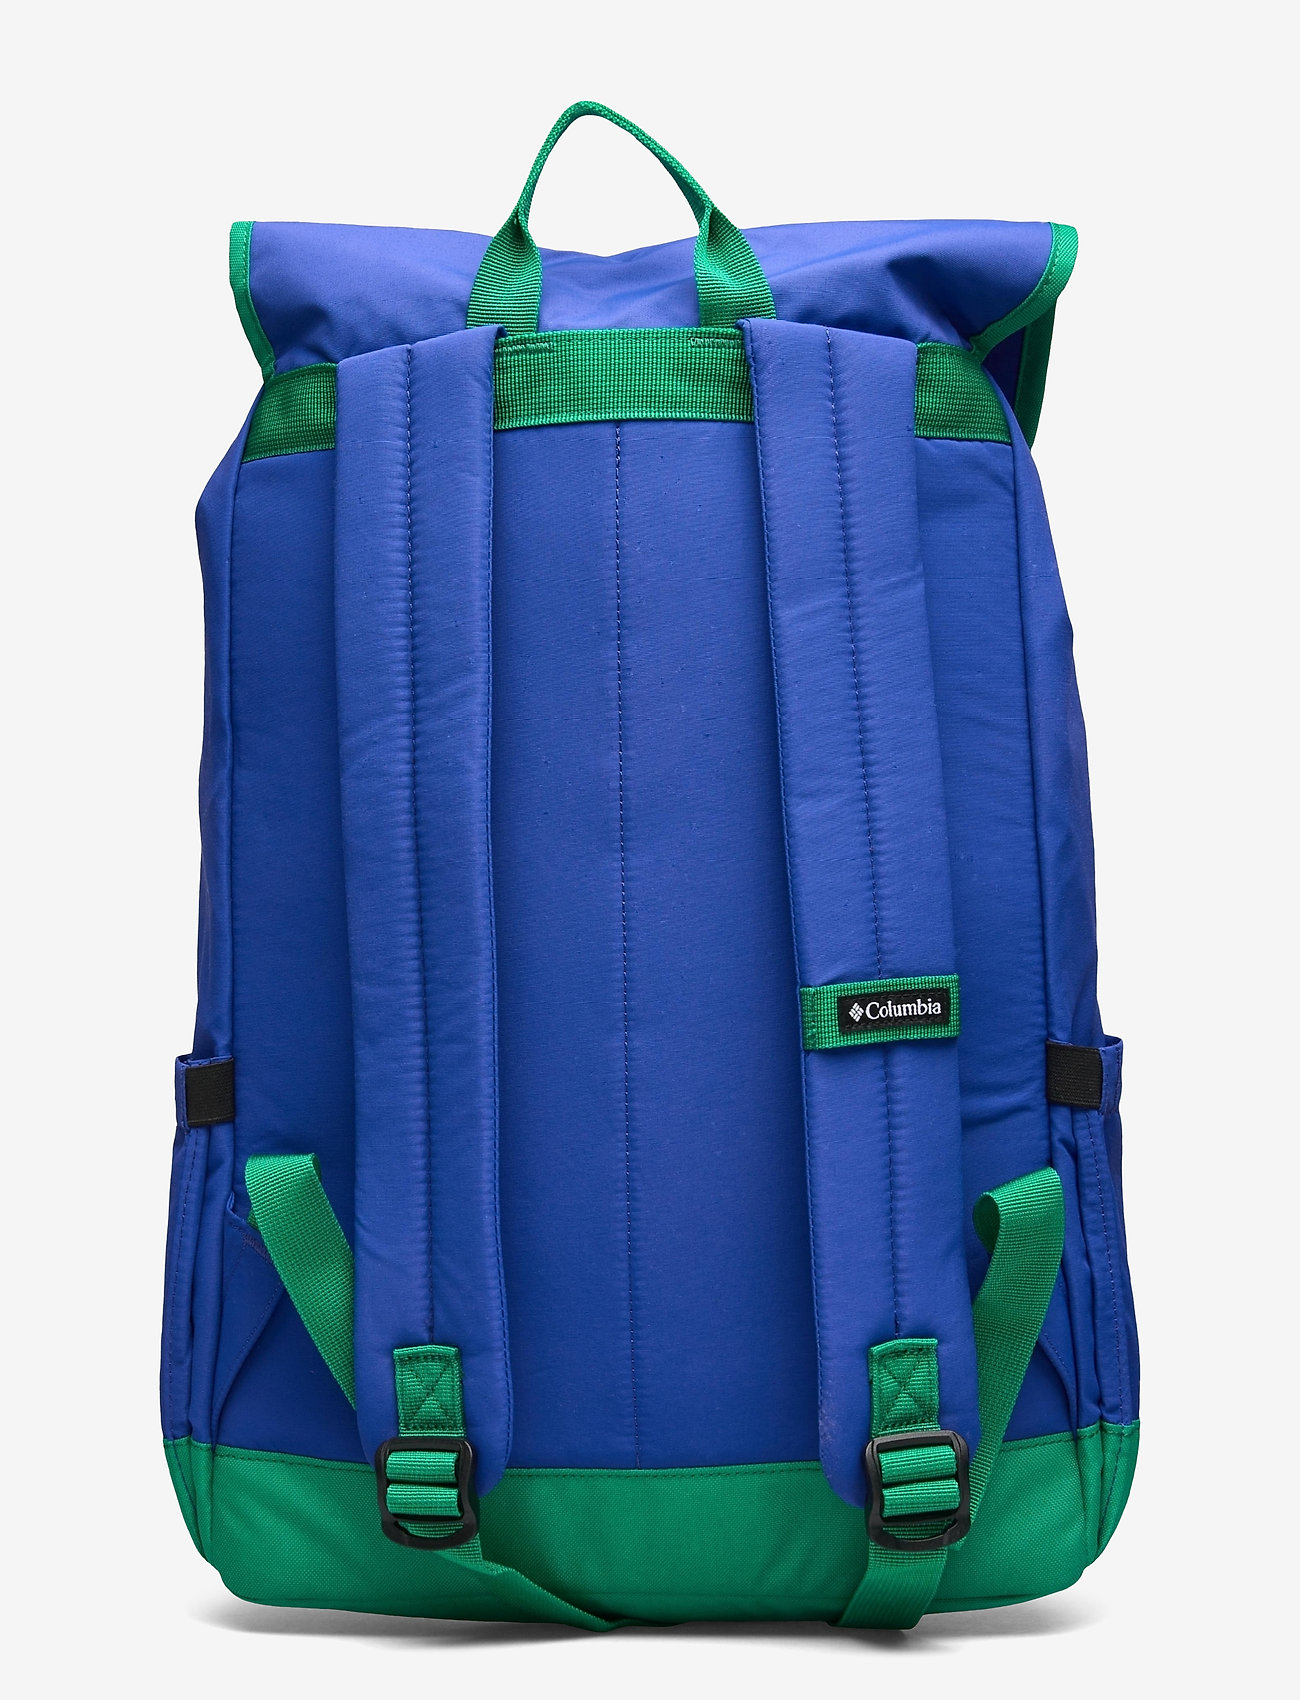 Columbia - Falmouth™ 21L Backpack - torby treningowe - lapis blue, eme - 1